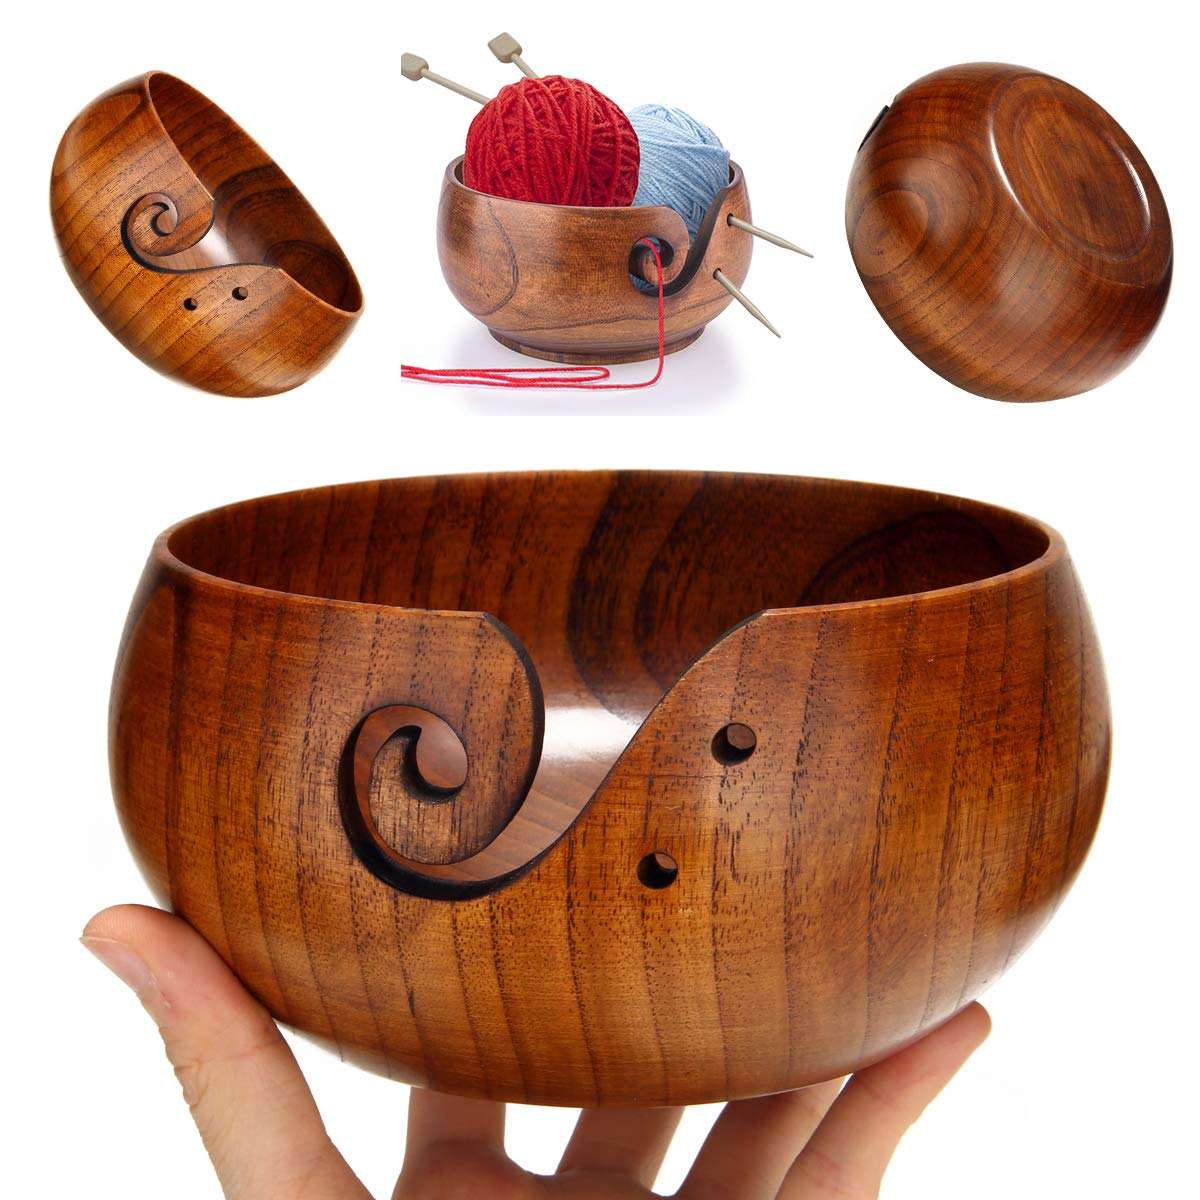 Freyamall Wooden Yarn Bowl with Holes Holder Handcrafted Knitting Yarn Needlework Crochet Storage Organizer, Perfect for Christmas Day!